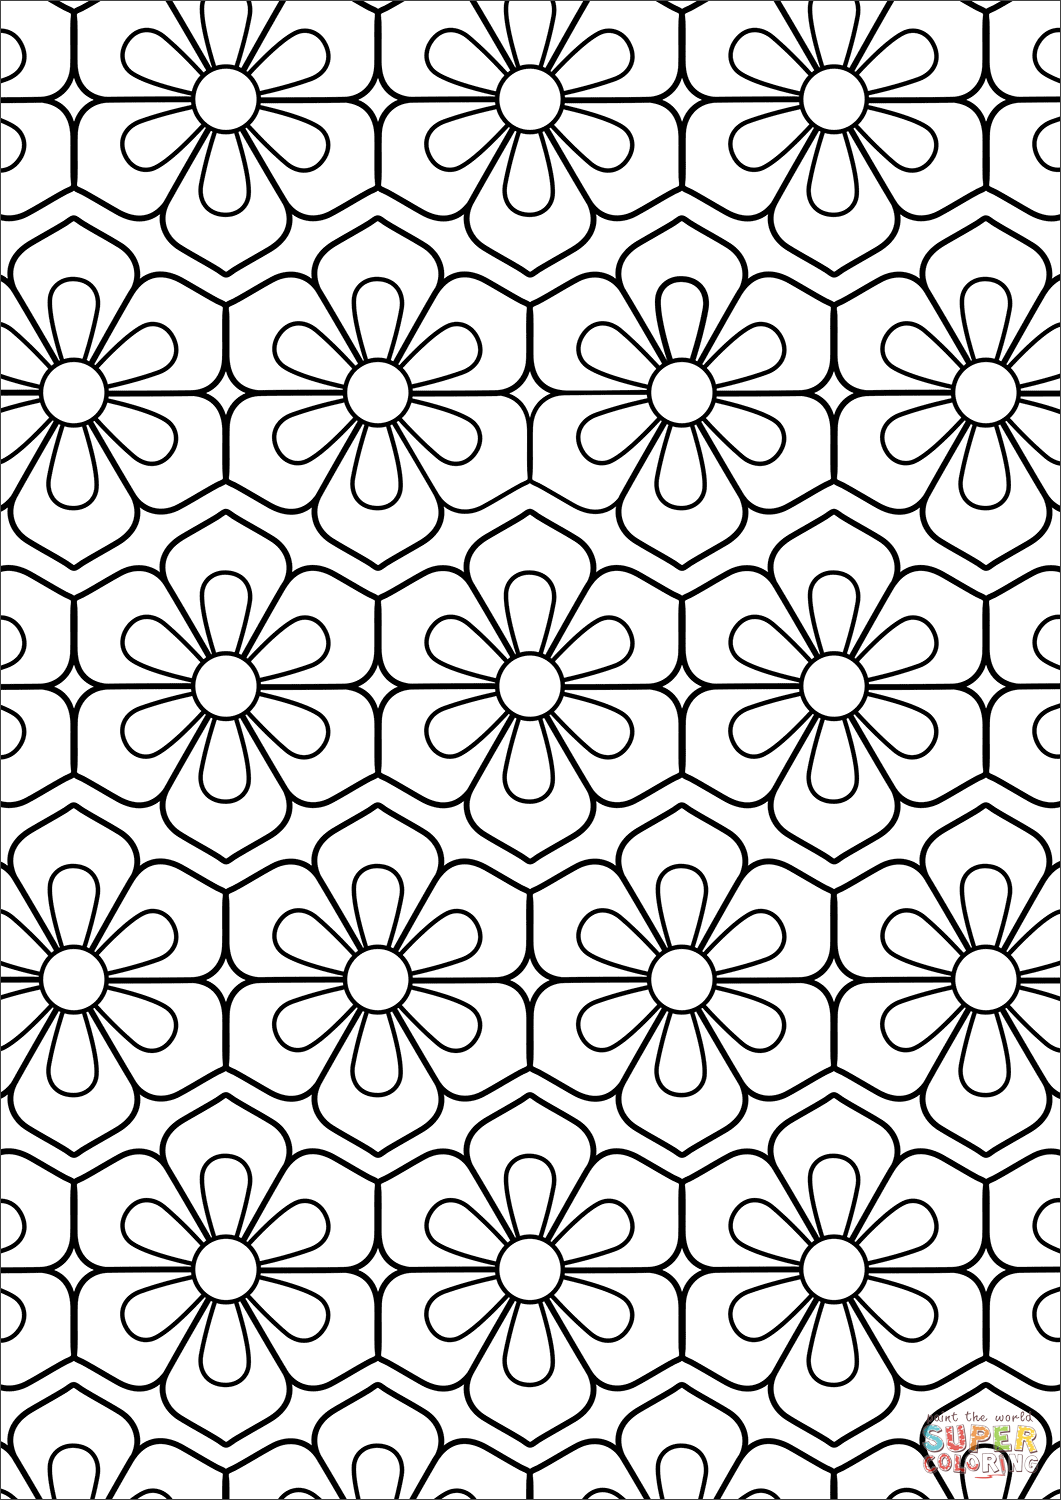 flower pattern to color simple repeating flower pattern mandala to color 1024x858 flower pattern to color